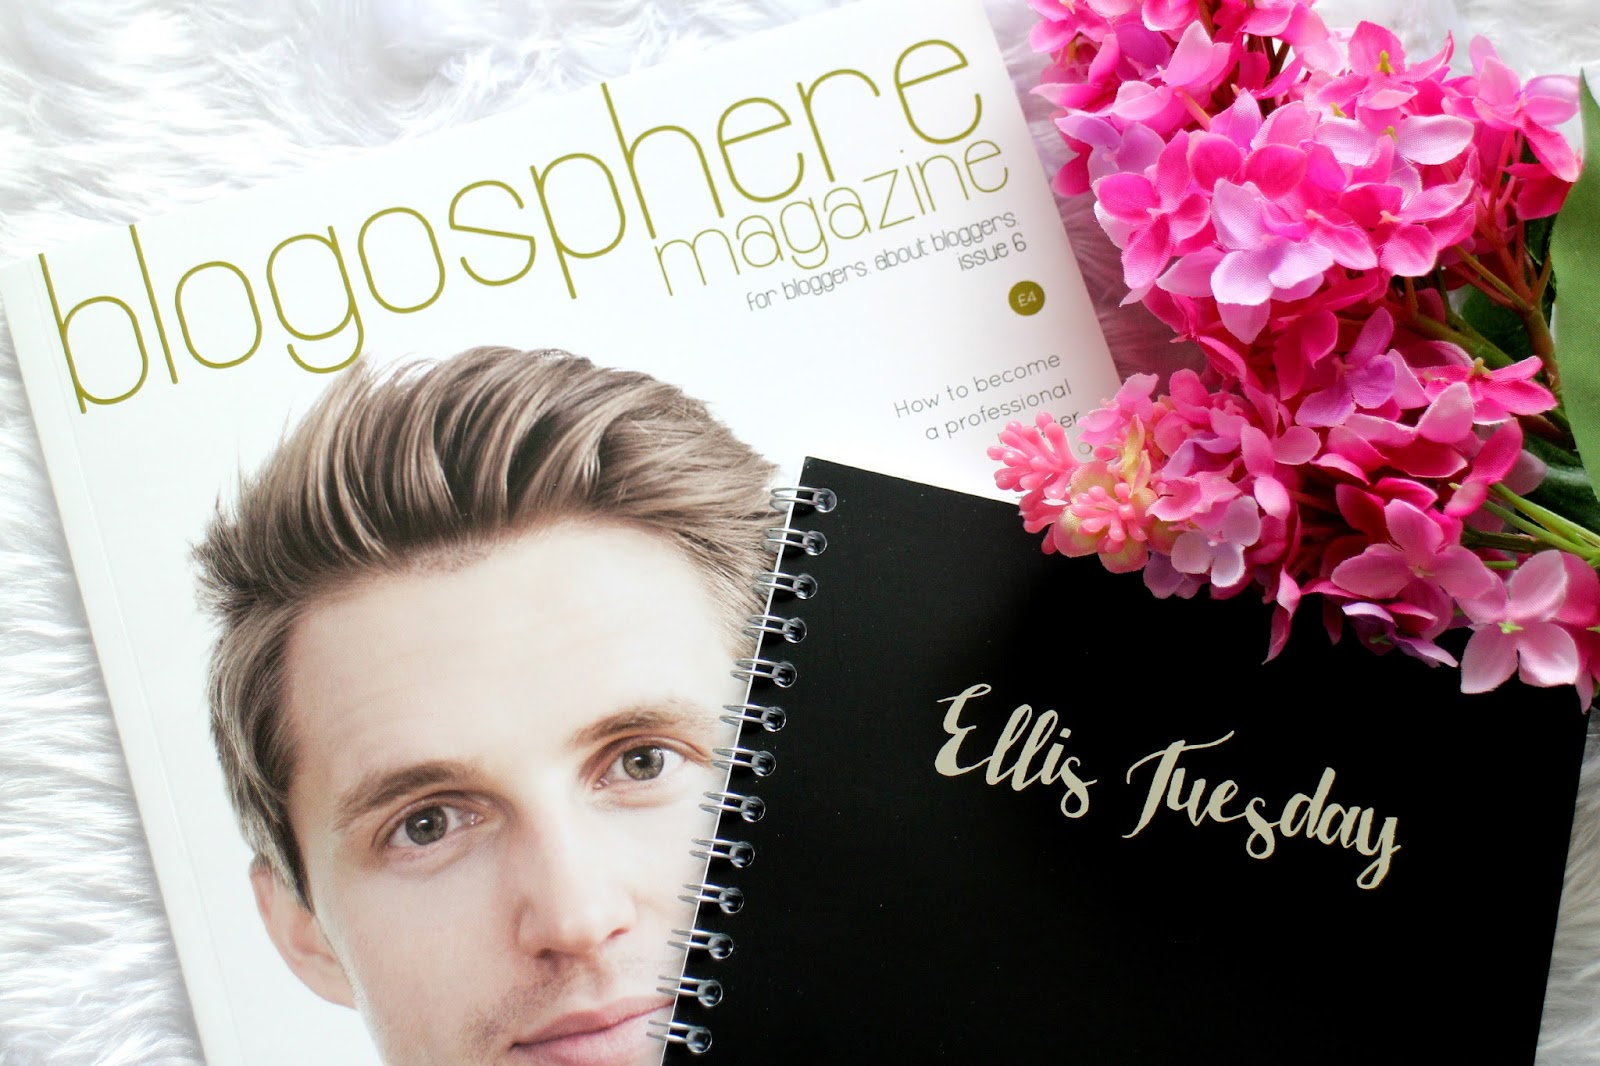 Blogosphere Magazine Marcus Butler Issue 6